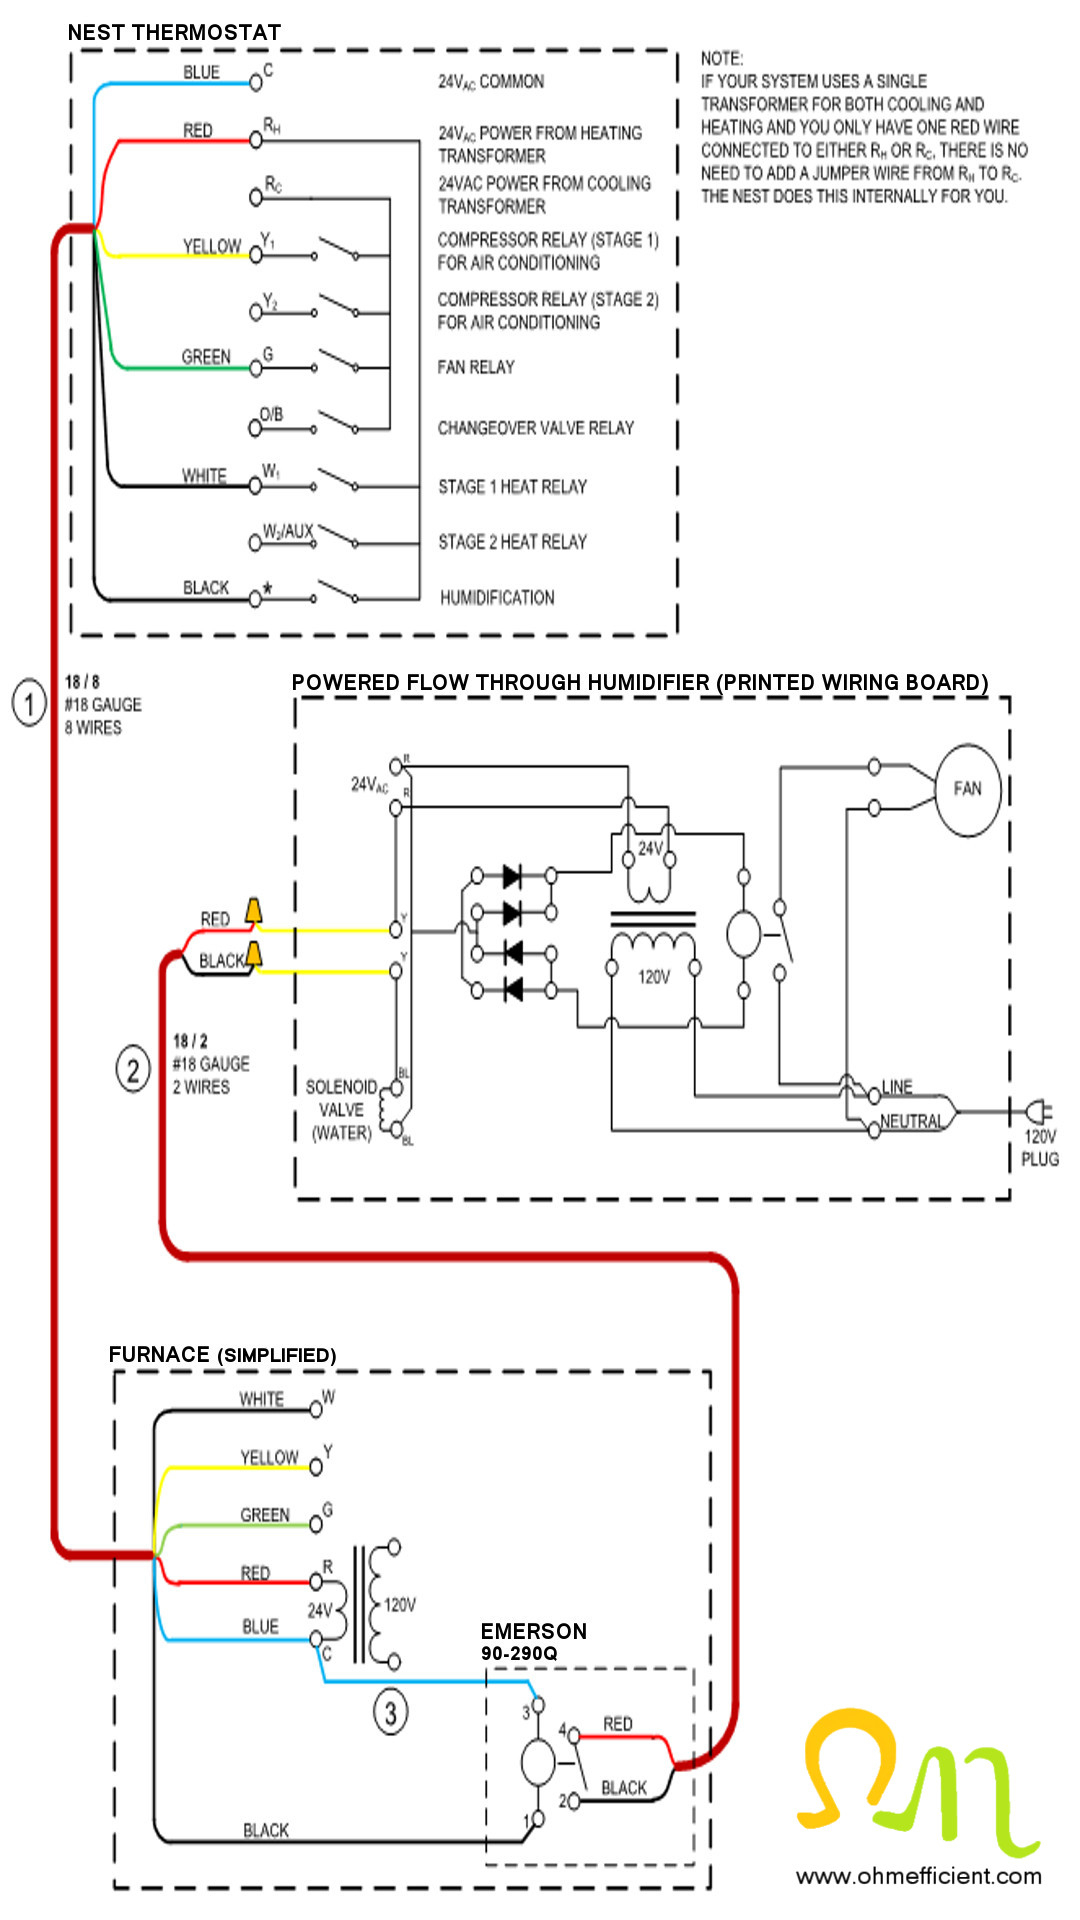 Trane Humidistat Wiring Diagram | Wiring Library - Nest Thermostat Trane Tam7 2 Stage Wiring Diagram